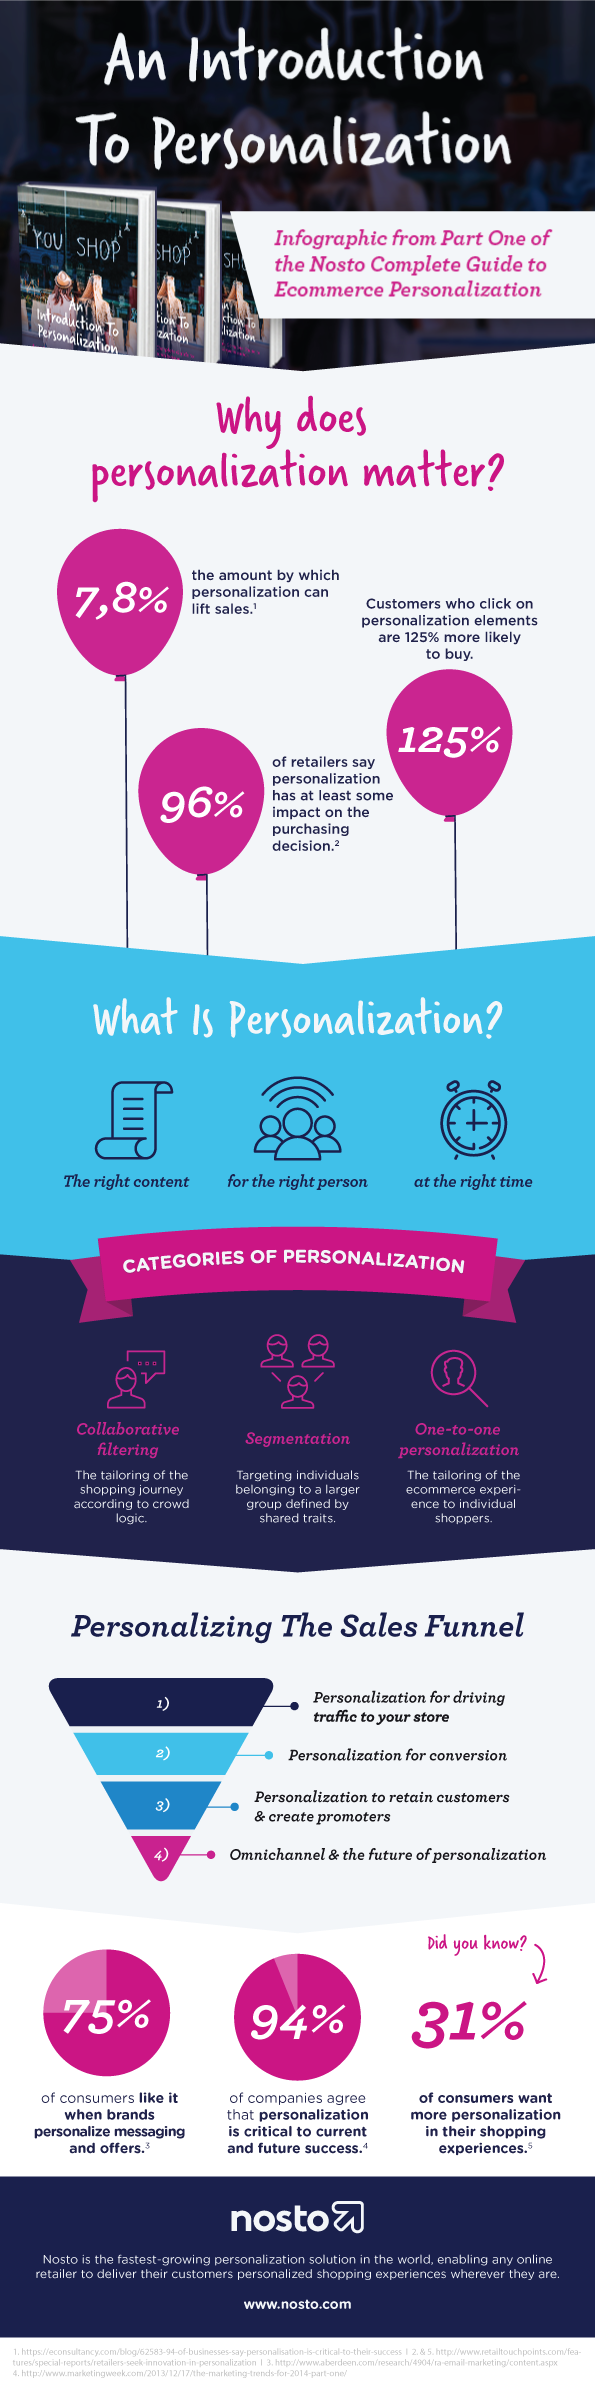 an introduction to personalization infographic